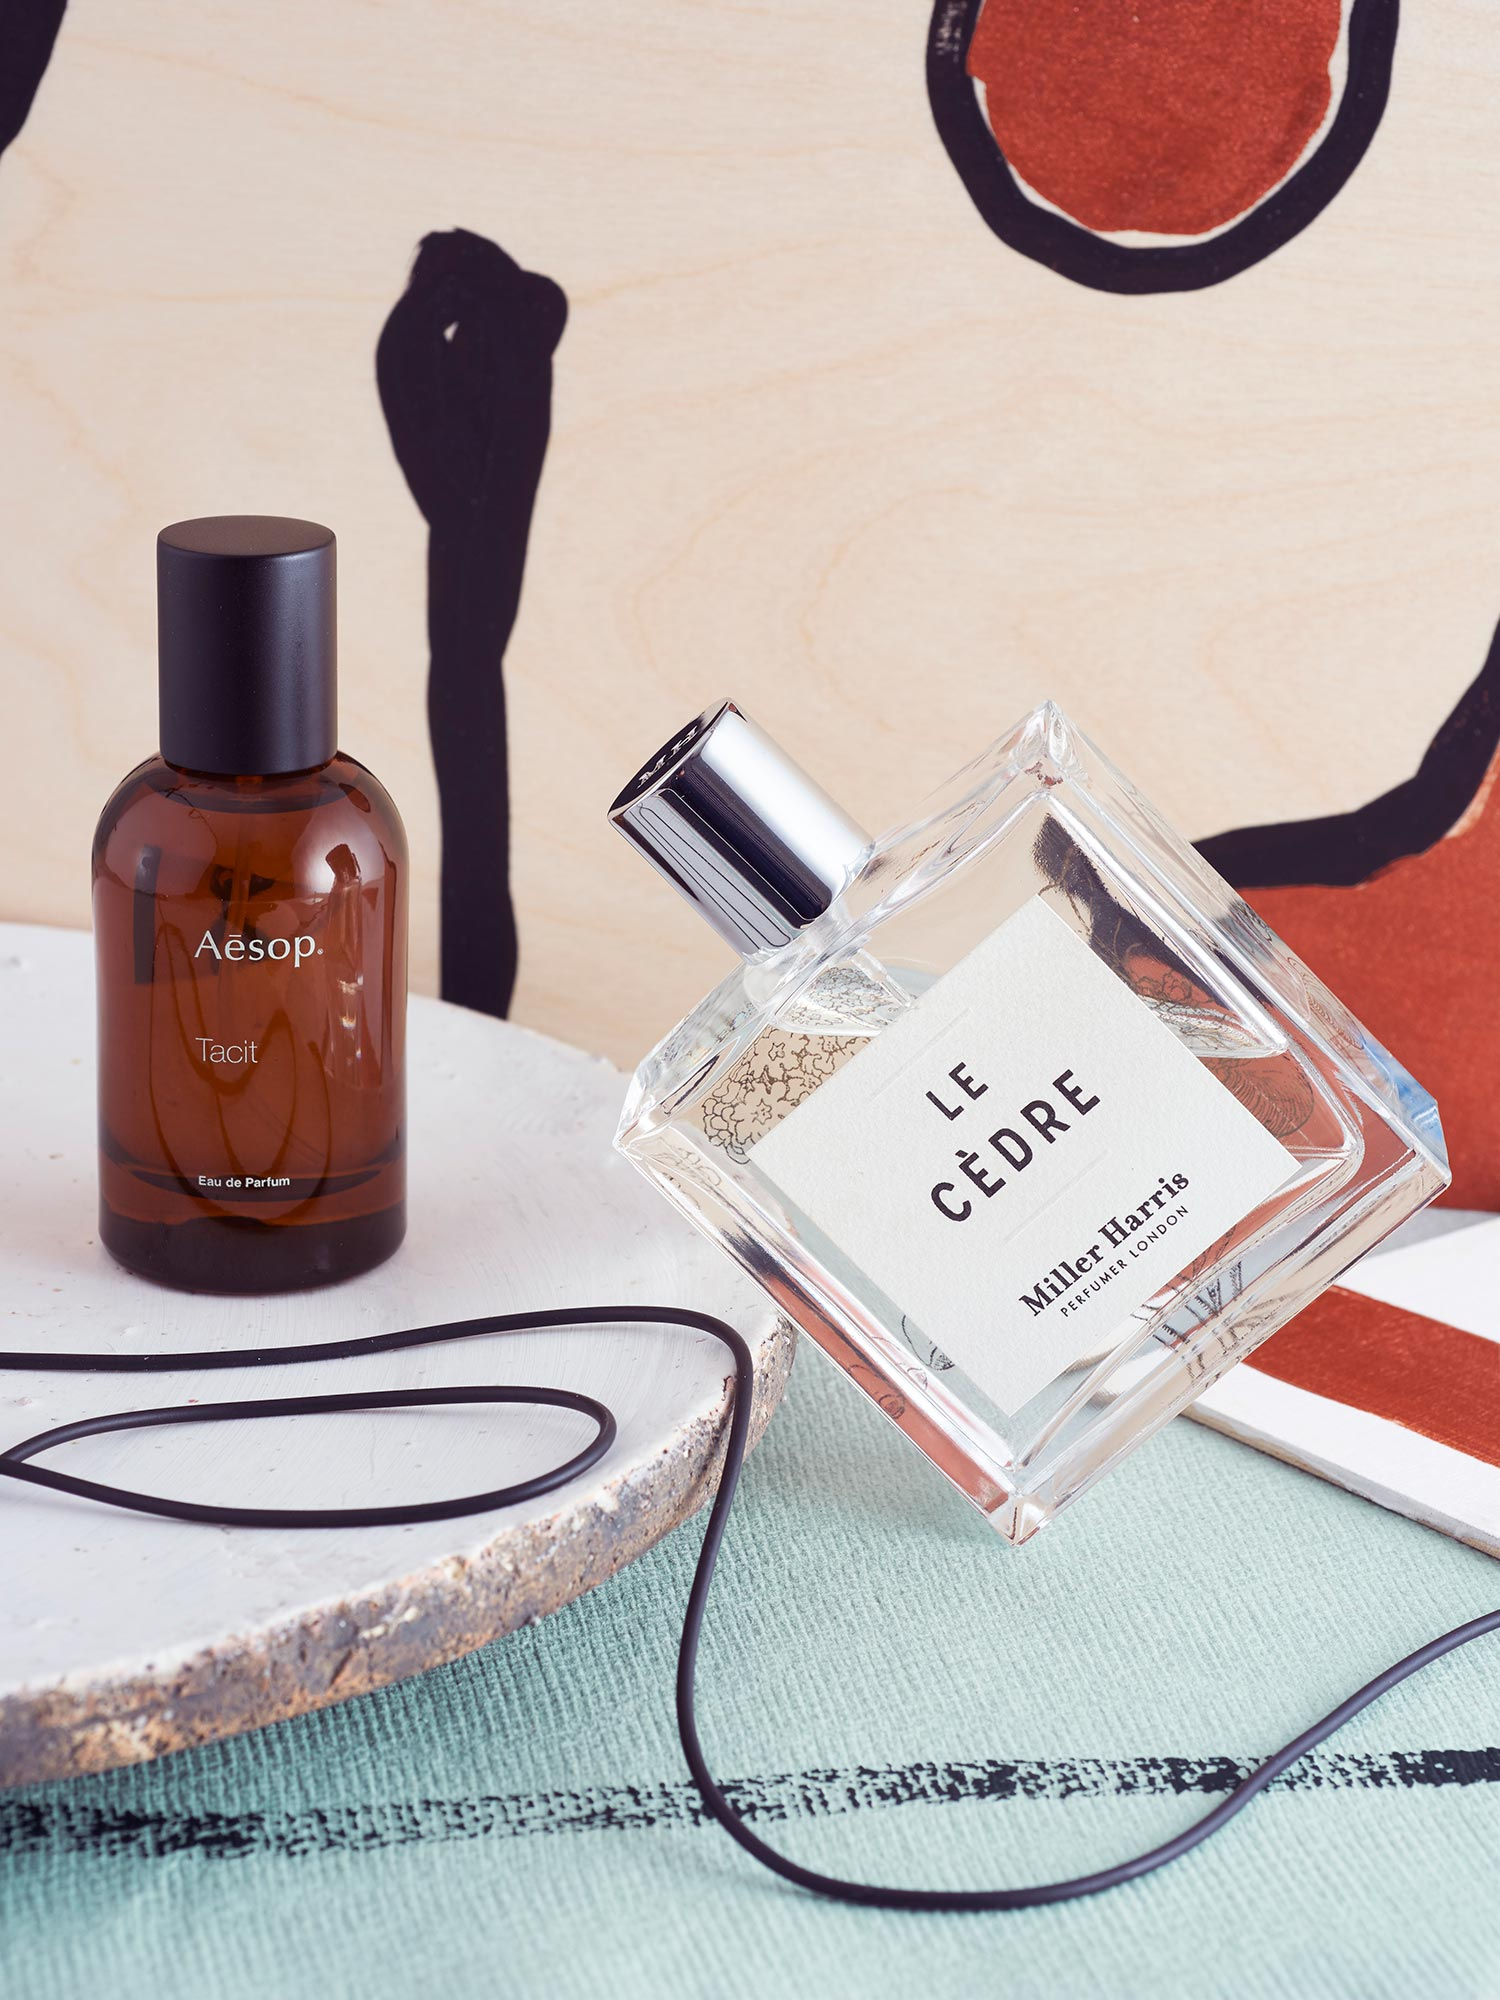 Tacit eau de parfum by  Aesop , 50ml, £77; Le Cèdre eau de parfum by Miller Harris from  Maze , 100ml, £165; Corinium serving platter from  Neptune , £19